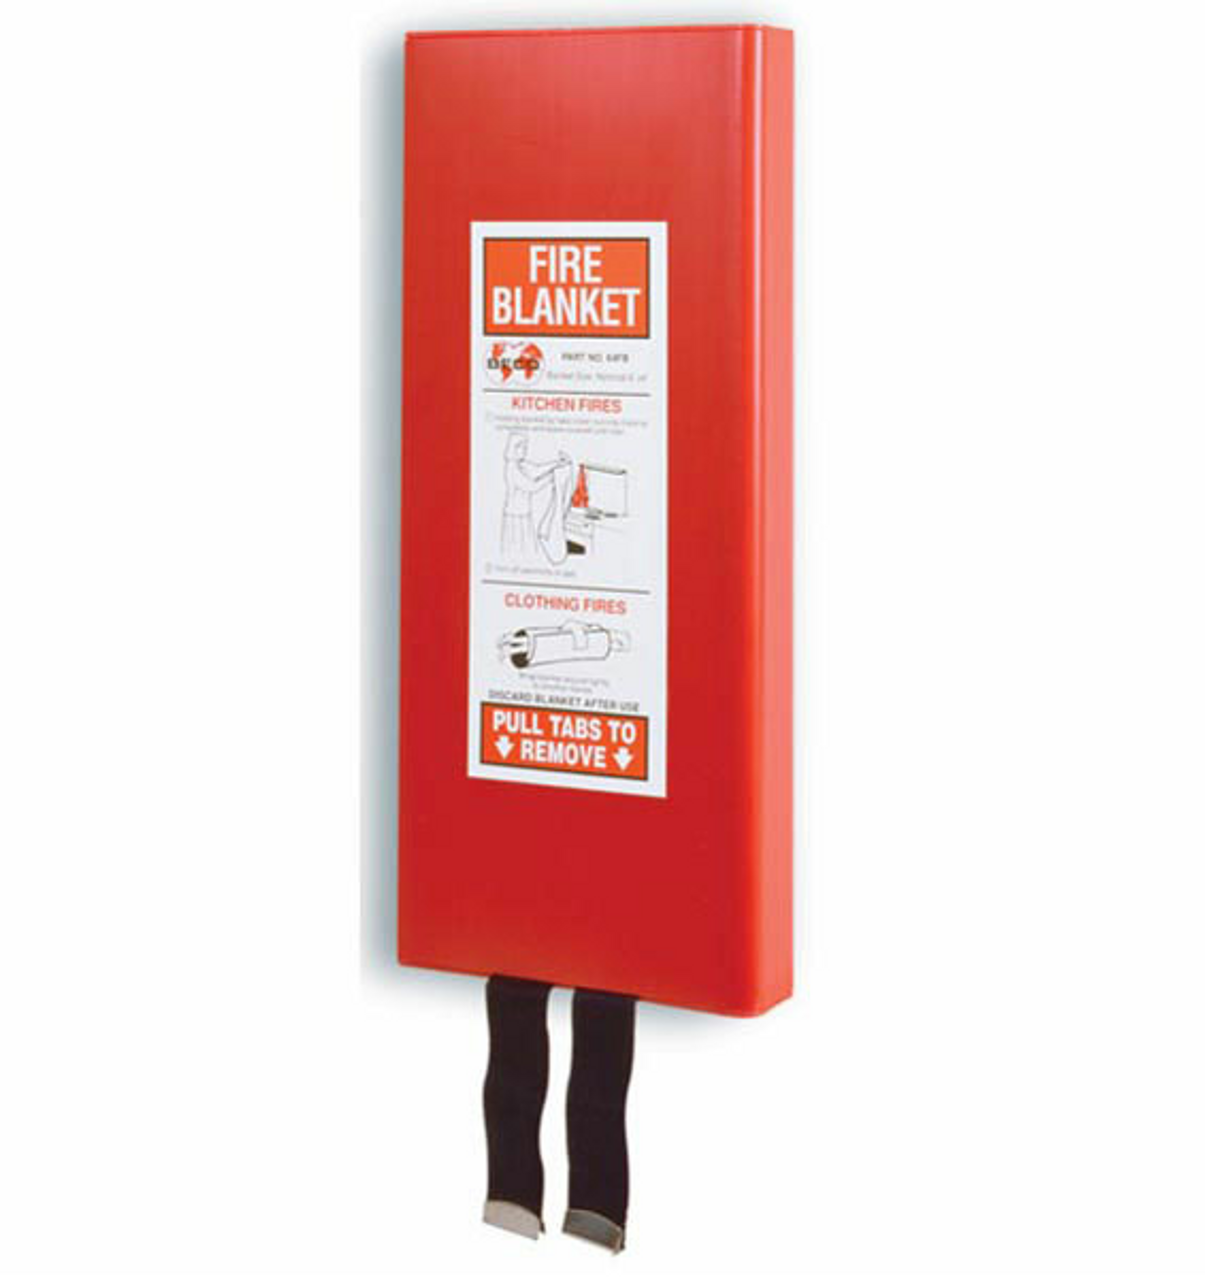 64FB - Fiberglass Fire Blanket and Cabinet